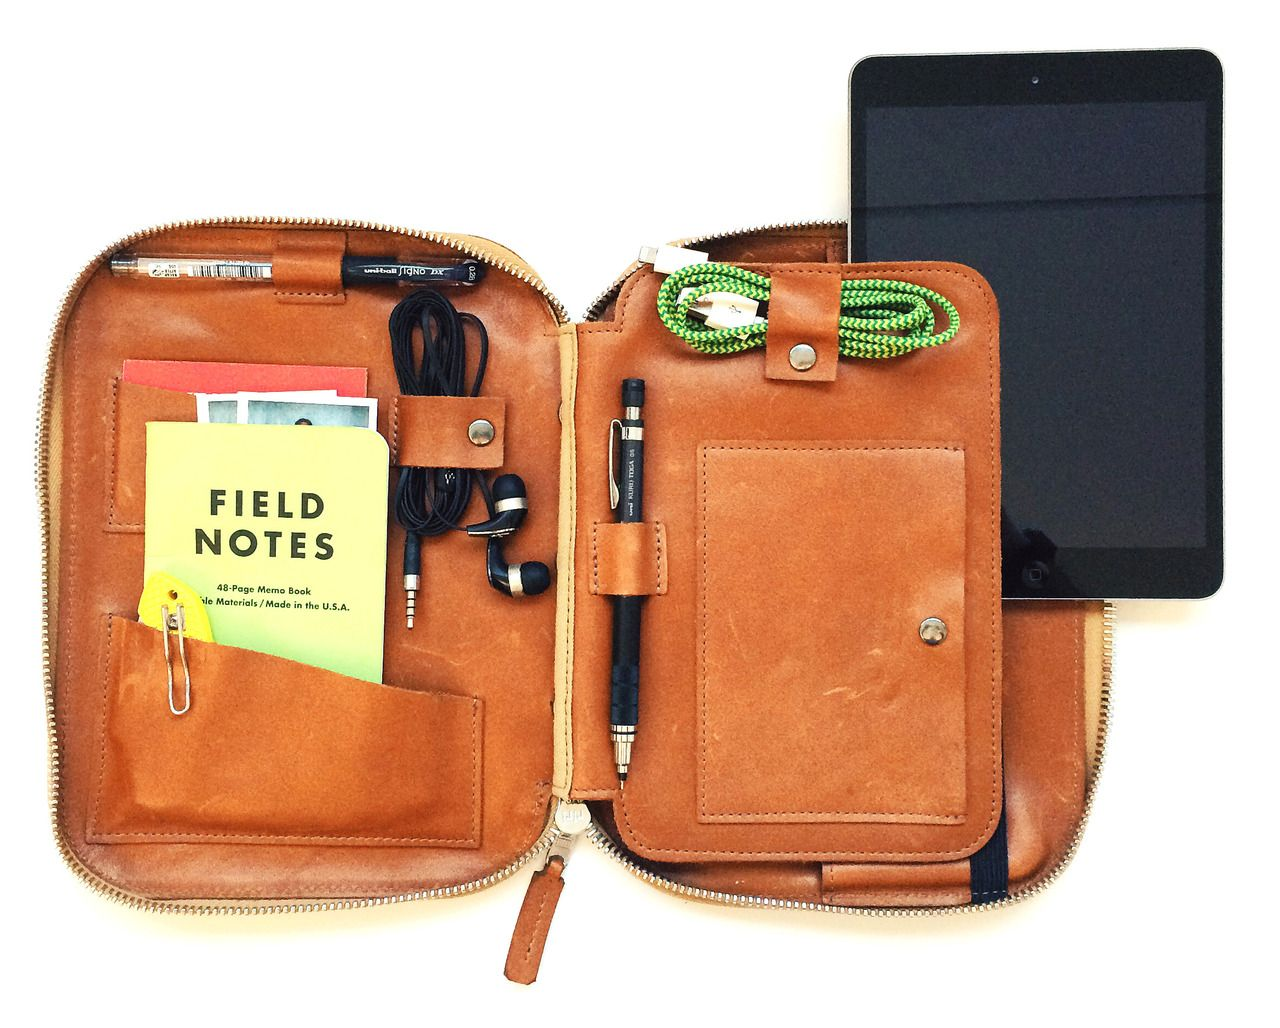 This is ground mod case ipad mini with retina display spyderco h1 this is ground mod case ipad mini with retina display spyderco field notes notebook business cards uniball signo dx pen skull candy headphones uni kuru reheart Image collections